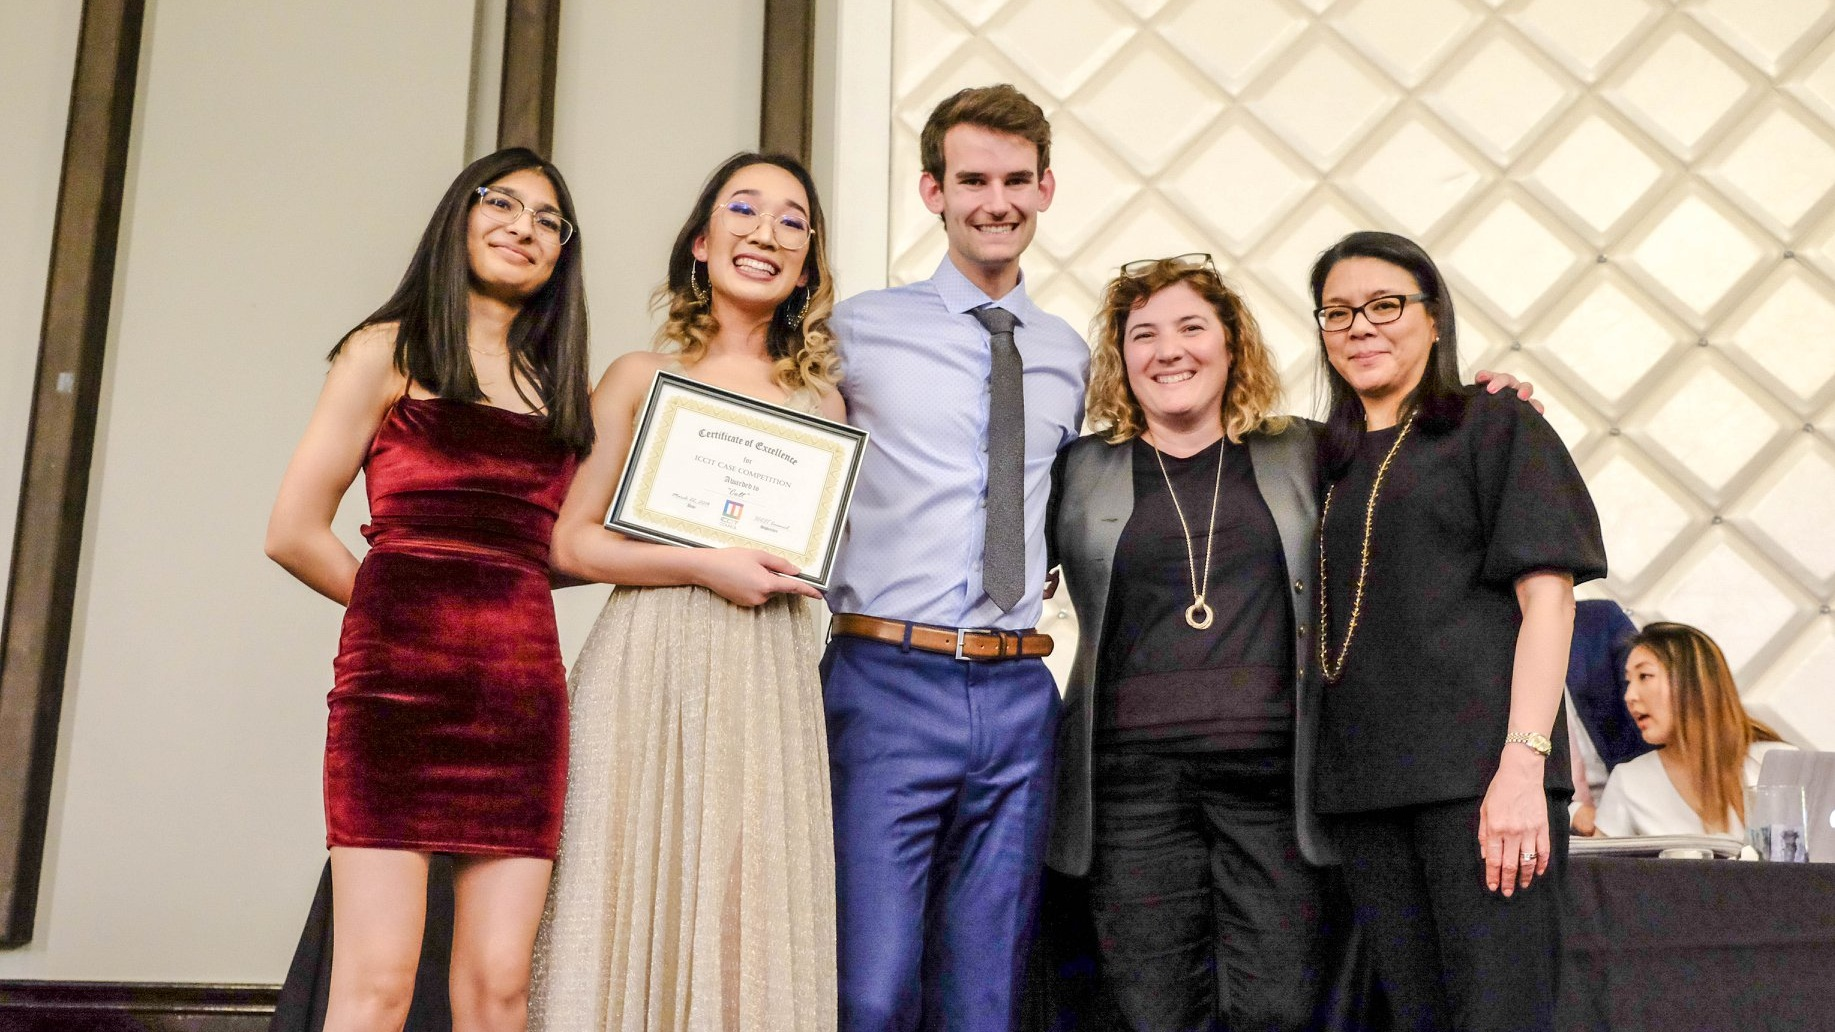 The winning team in Glenn Davis Group and the University of Toronto's inaugural Case Competition is pictured here with Celeste Mendonca, VP HR, and Lisa Olay, Designer, representing Glenn Davis Group.